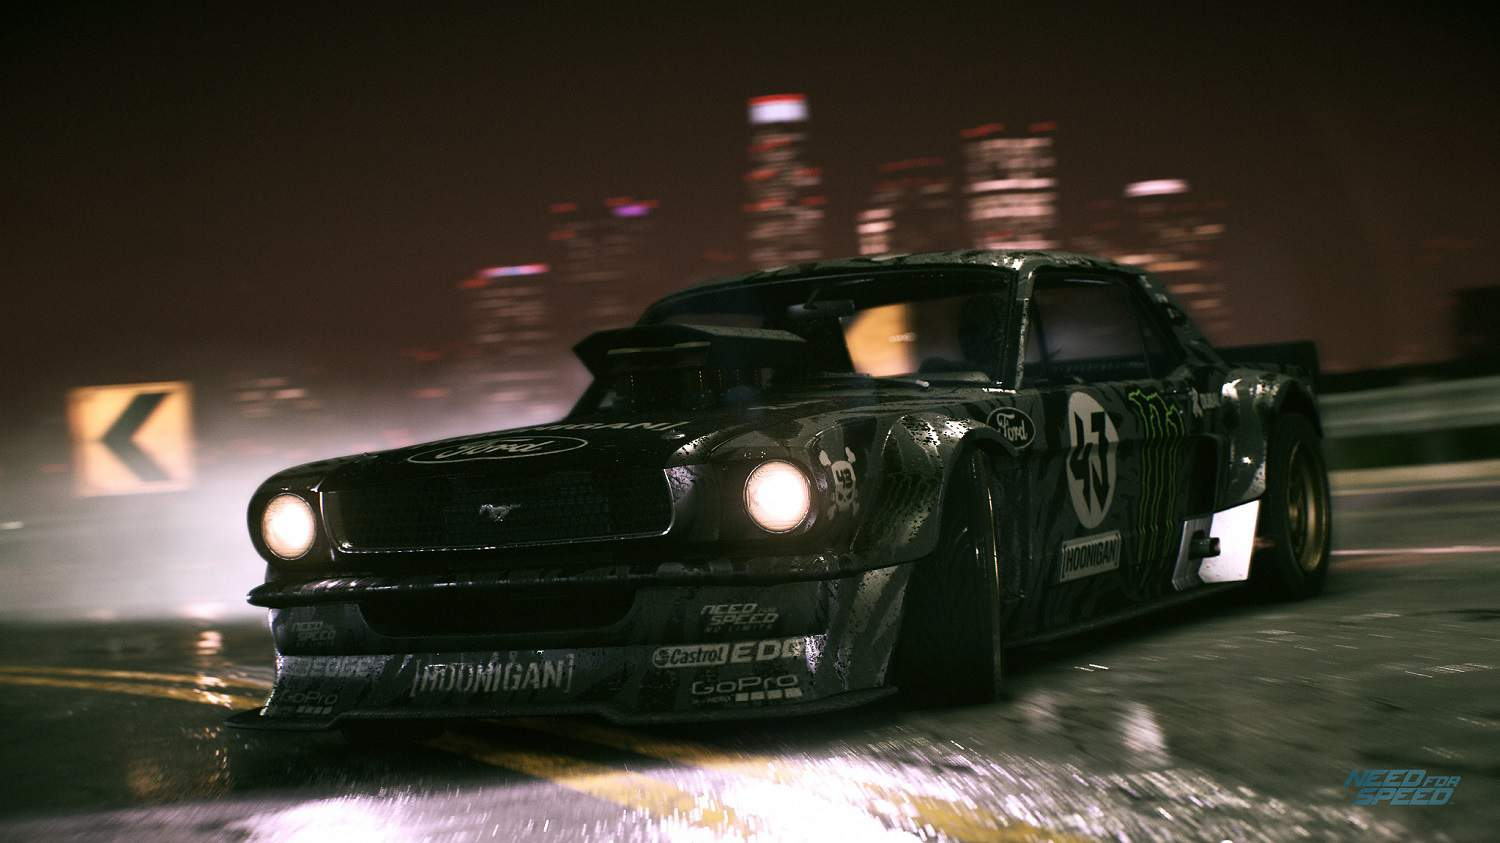 Need For Speed Cheat Codes Latest Update Everything You Need to Know